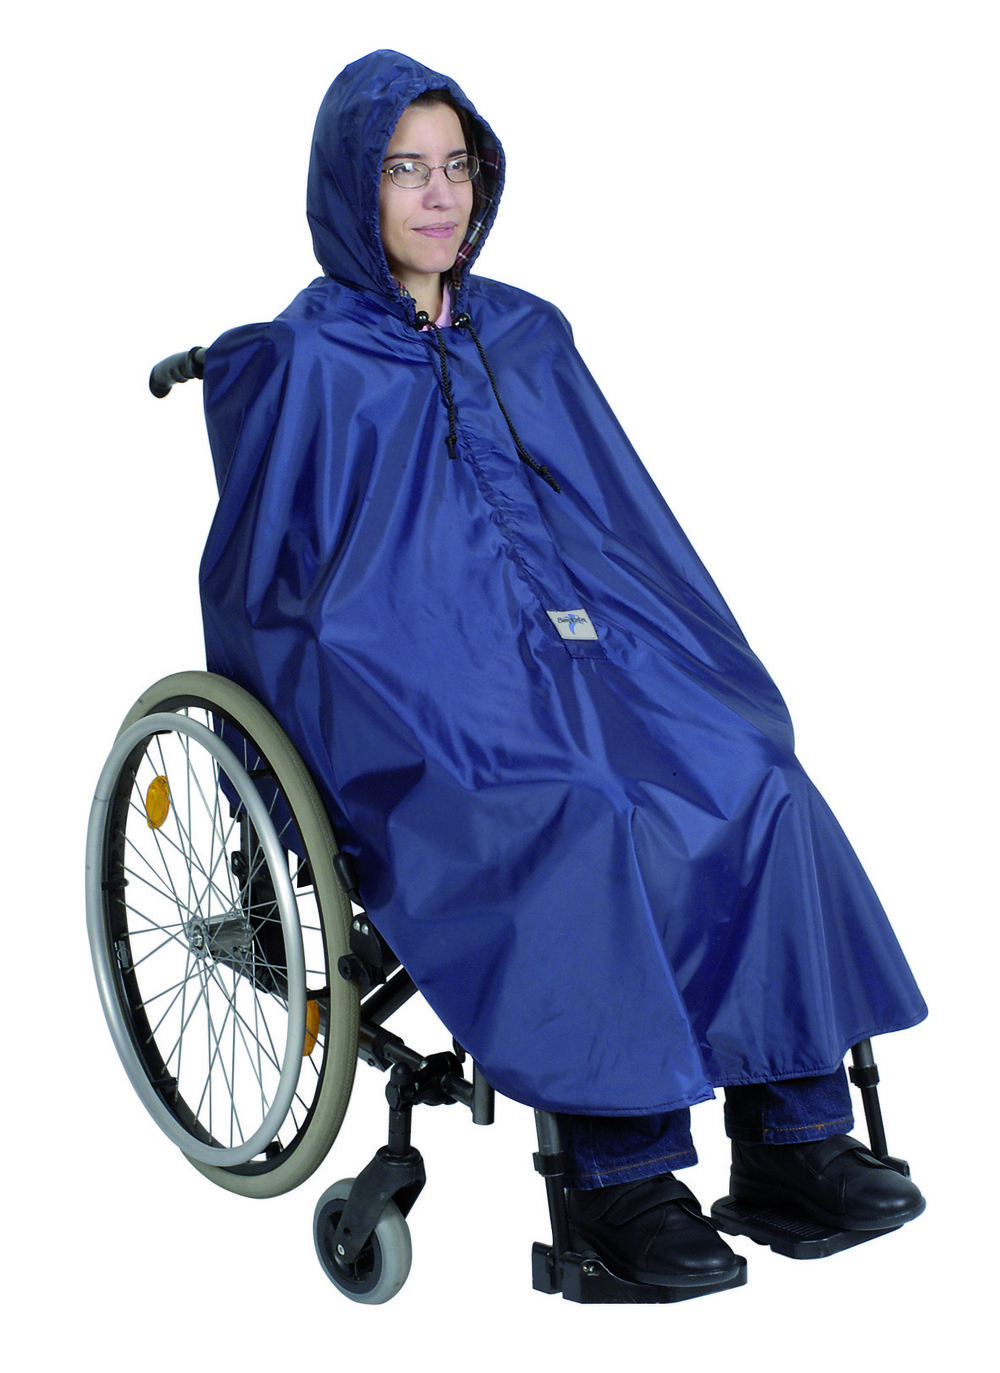 Mobility Poncho No Sleeves Unlined Quick And Easy To Put On And Fully Waterproof For Rain Protection Ideal For Use On Wheelchair Clothing Clothes Poncho